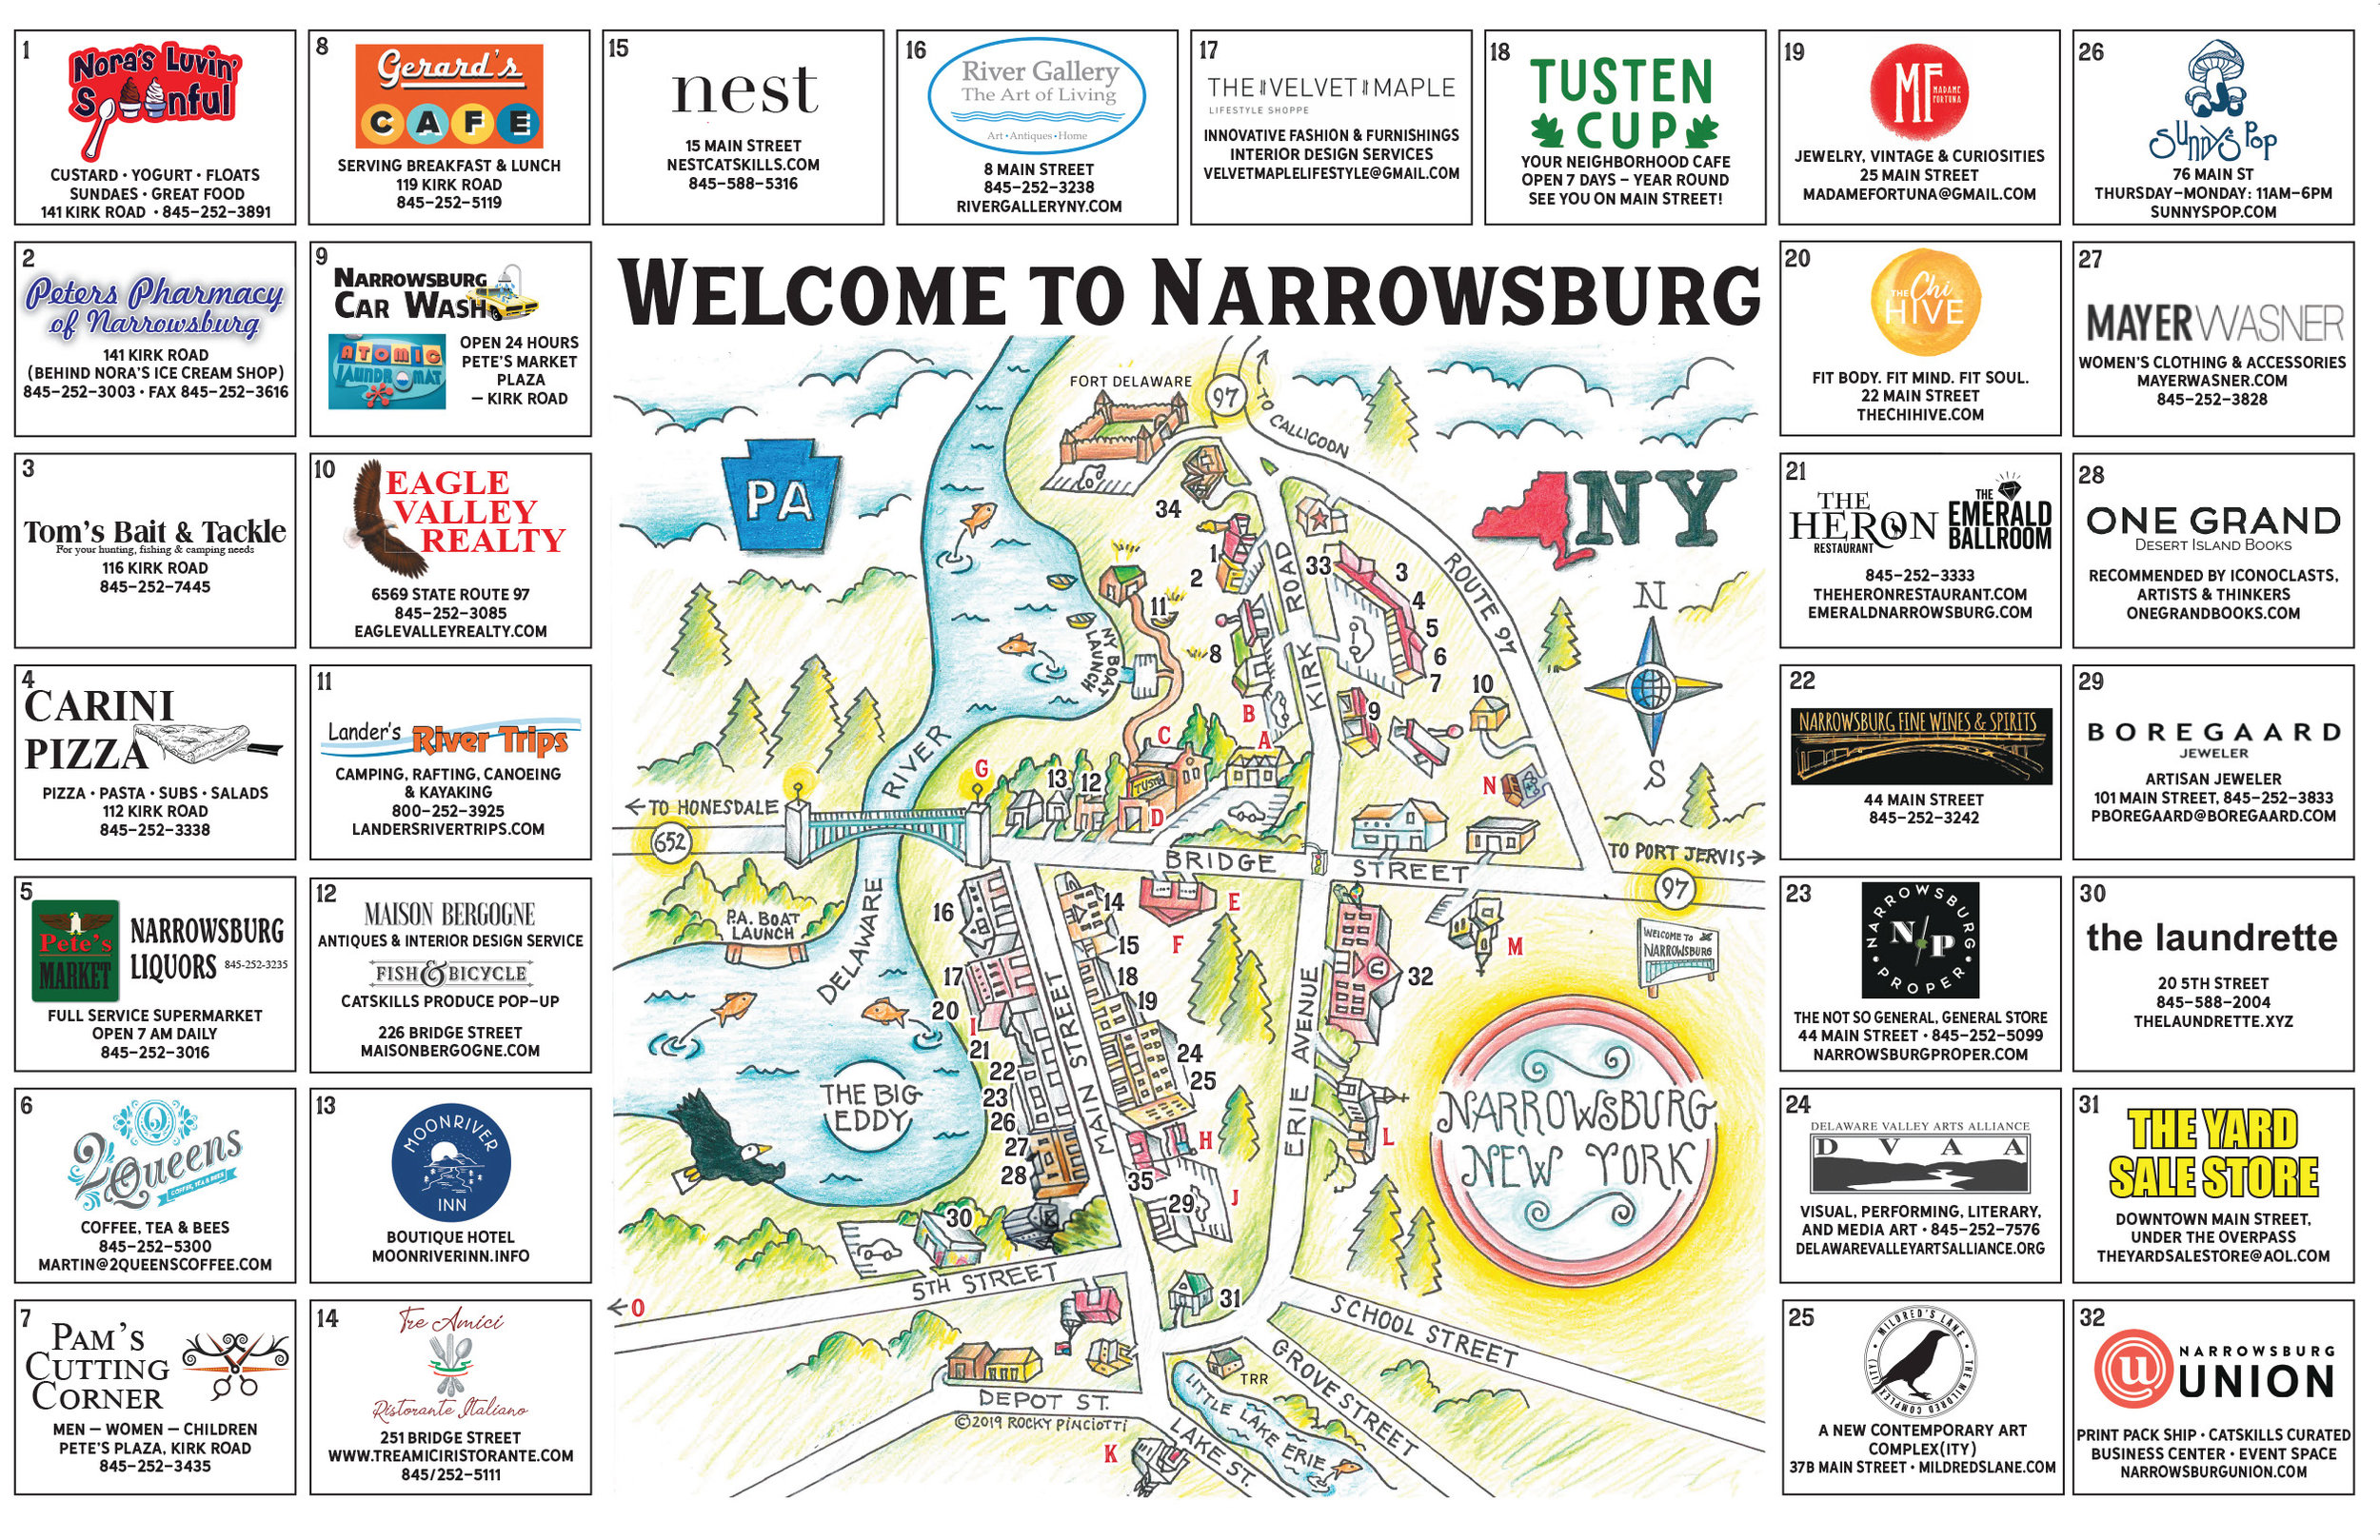 Narrowsburg NY Map.jpg